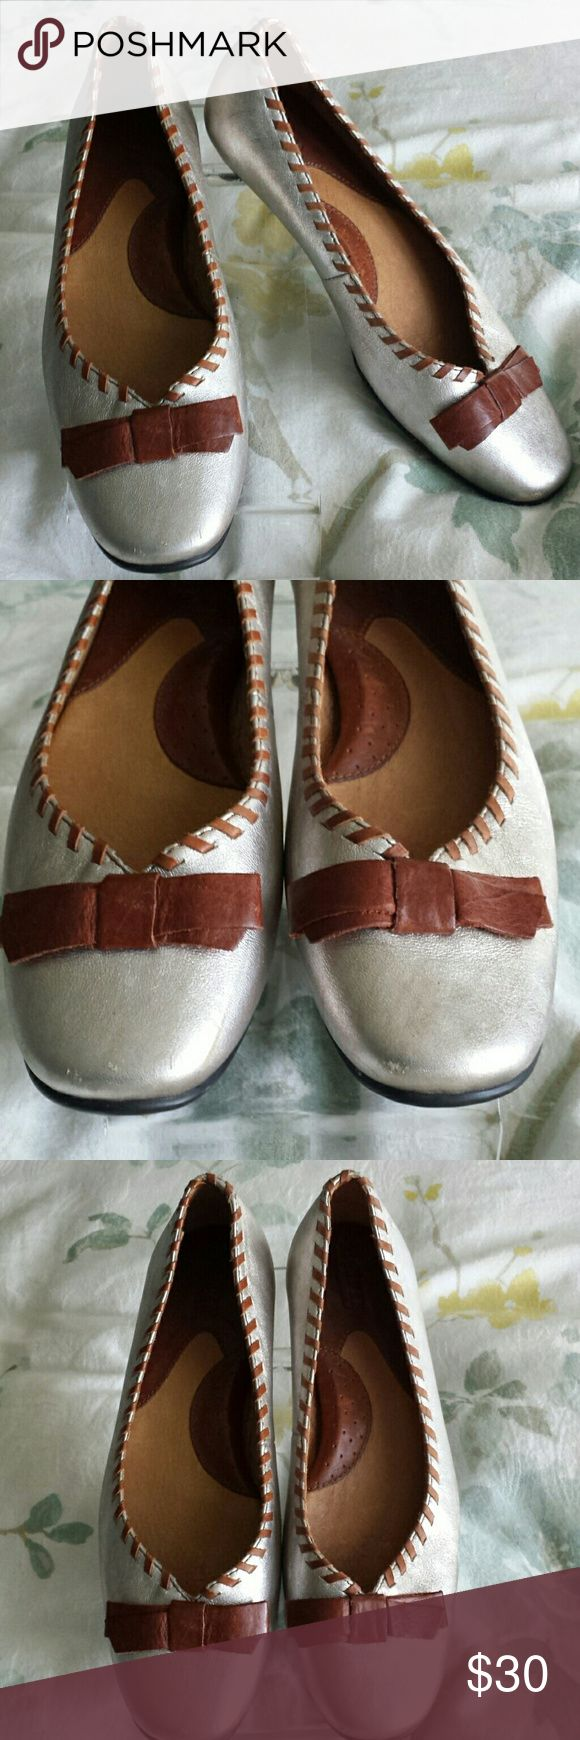 Born Silver Ballet Flats with Brown Bows 6 These are so sweet and transition to every season.  They are silver with brown leather whip stitching and brown bows.  They have slight scuffs on the back heels.  There is little inside wear and little sole wear, so little I don't know how my daughter scuffed the heels. Size 6 Born Shoes Flats & Loafers